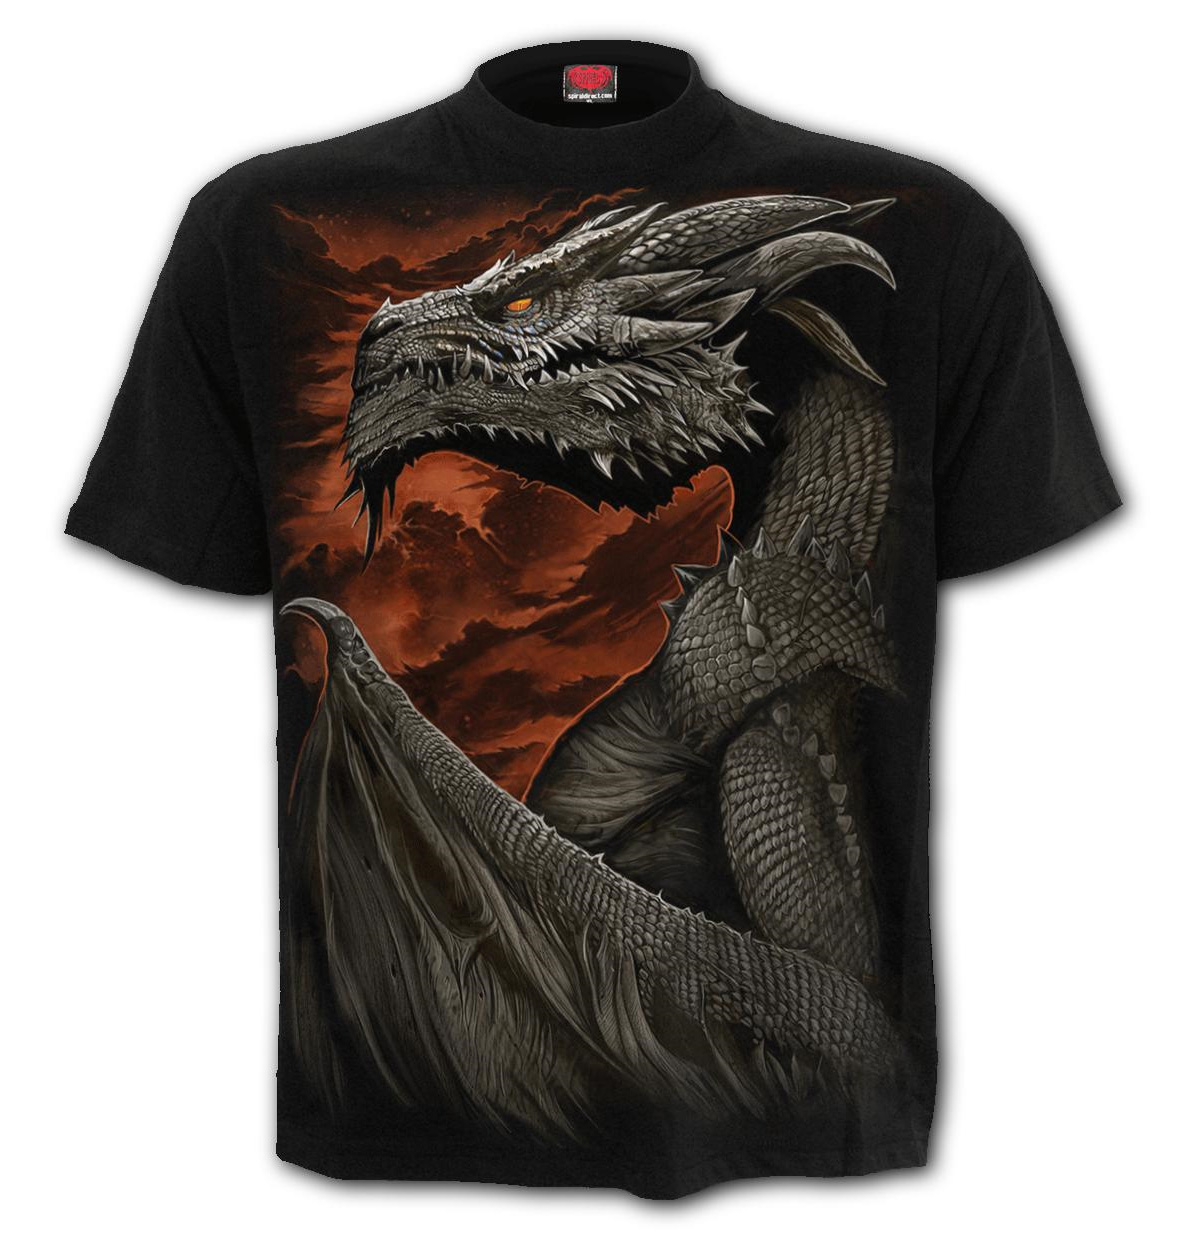 SPIRAL-Direct-Unisex-T-Shirt-Biker-Goth-MAJESTIC-DRACO-Dragon-All-Sizes thumbnail 15